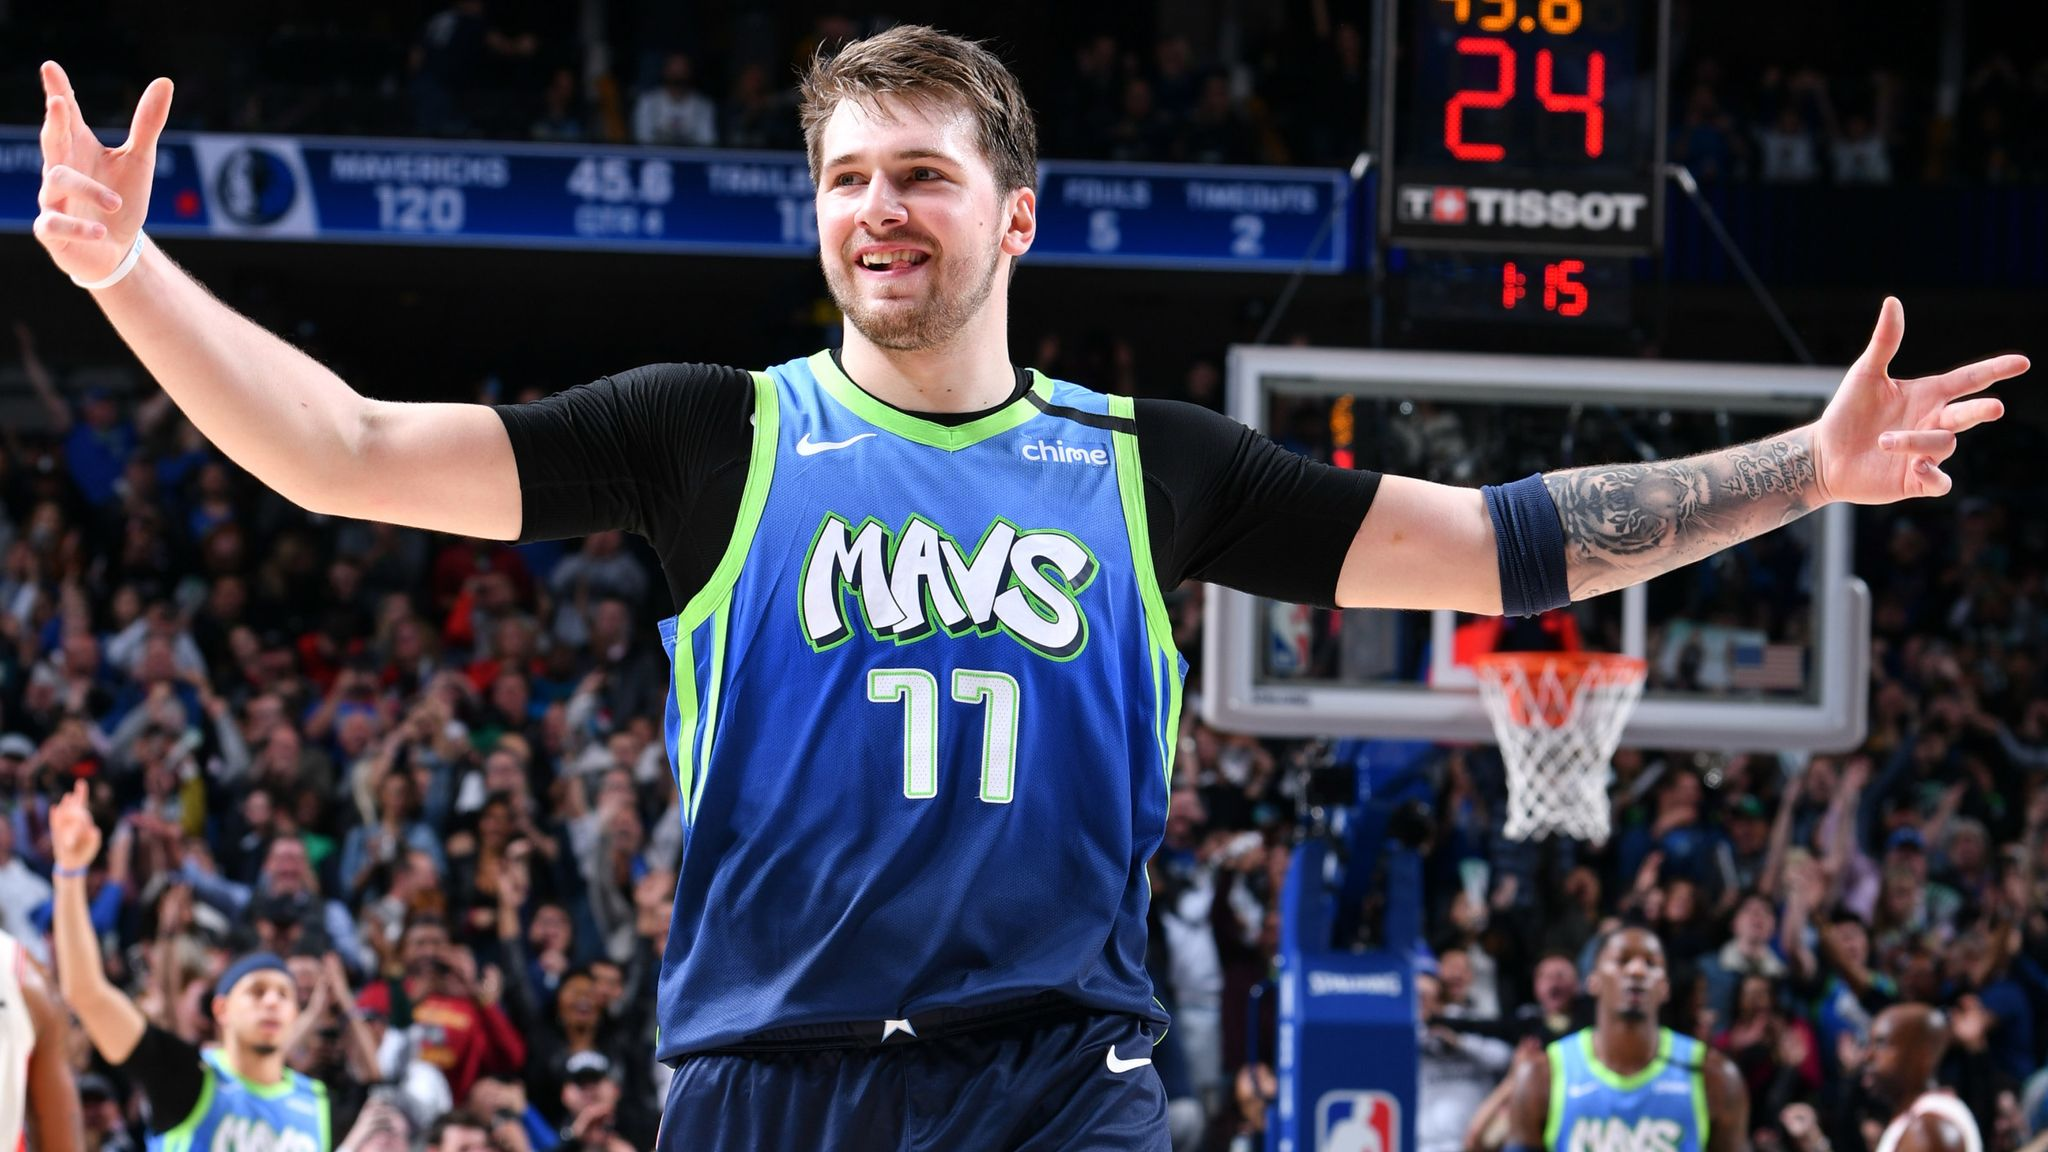 Luka Doncic posts new career-high in three-pointers made as Dallas Mavericks roll Portland Trail Blazers